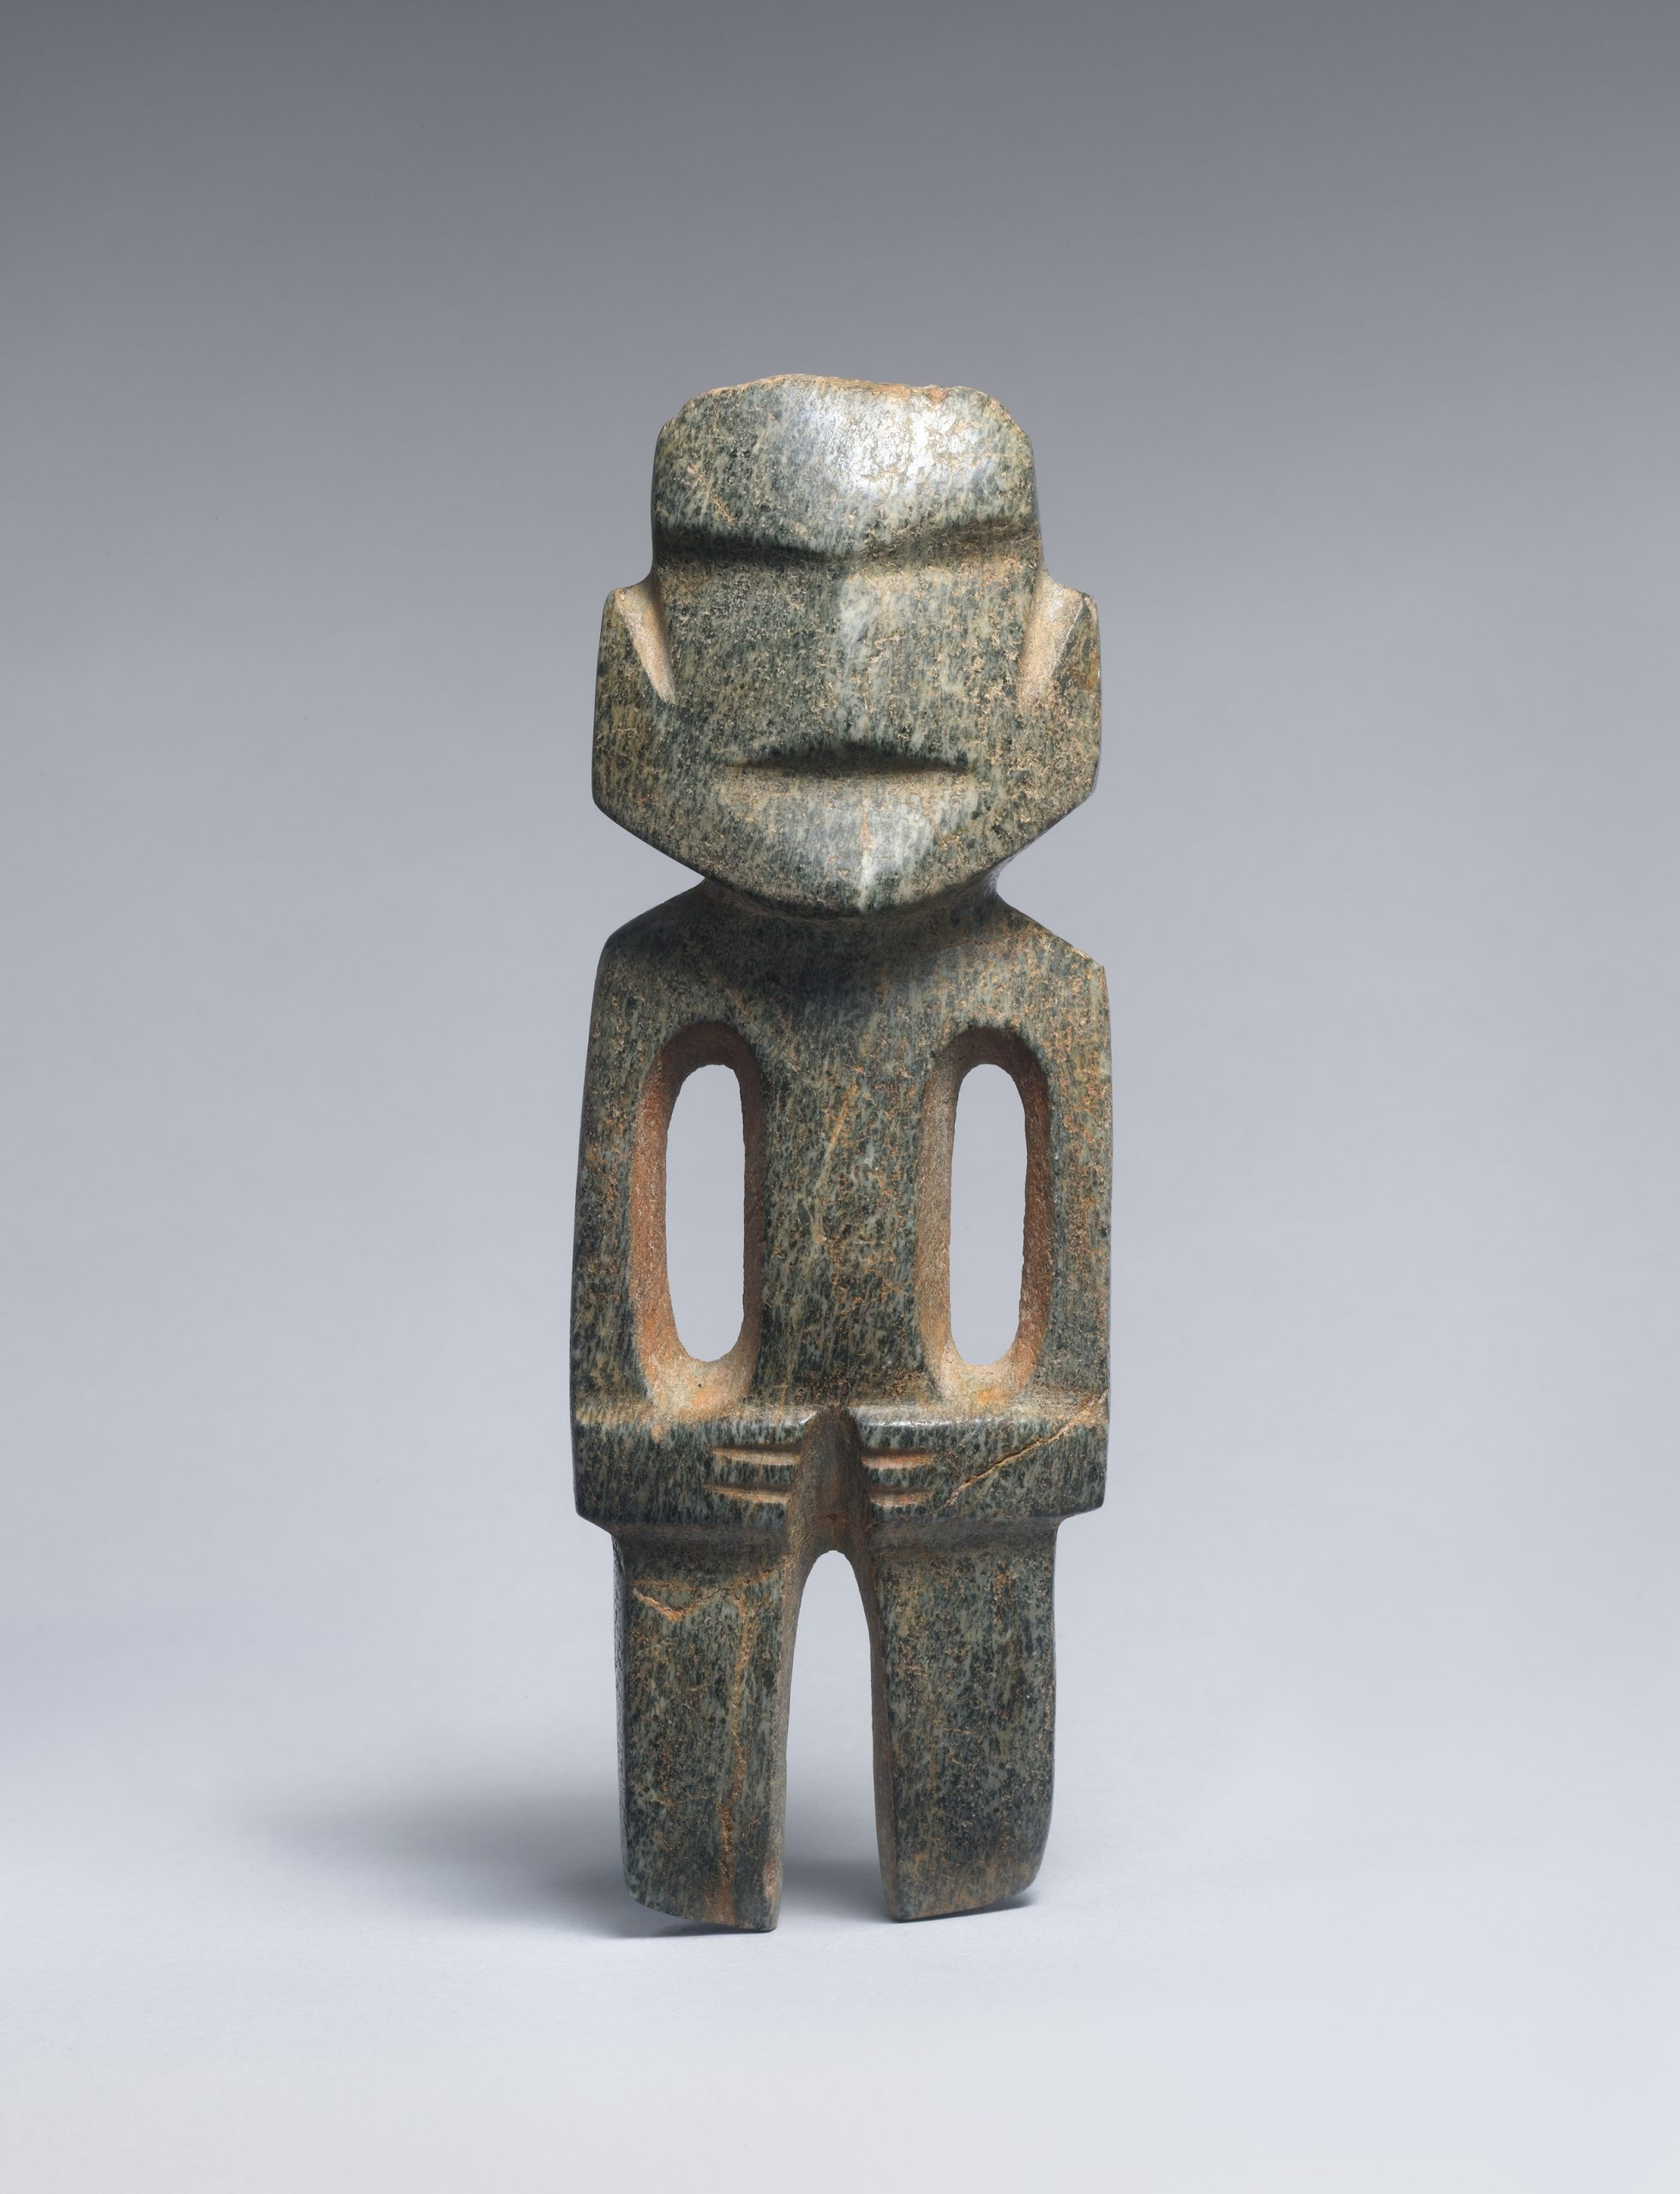 Stone figure with a broad rounded face, indentations for the nose and mouth, two hollows to form the torso and arms, and hands folded across the body.